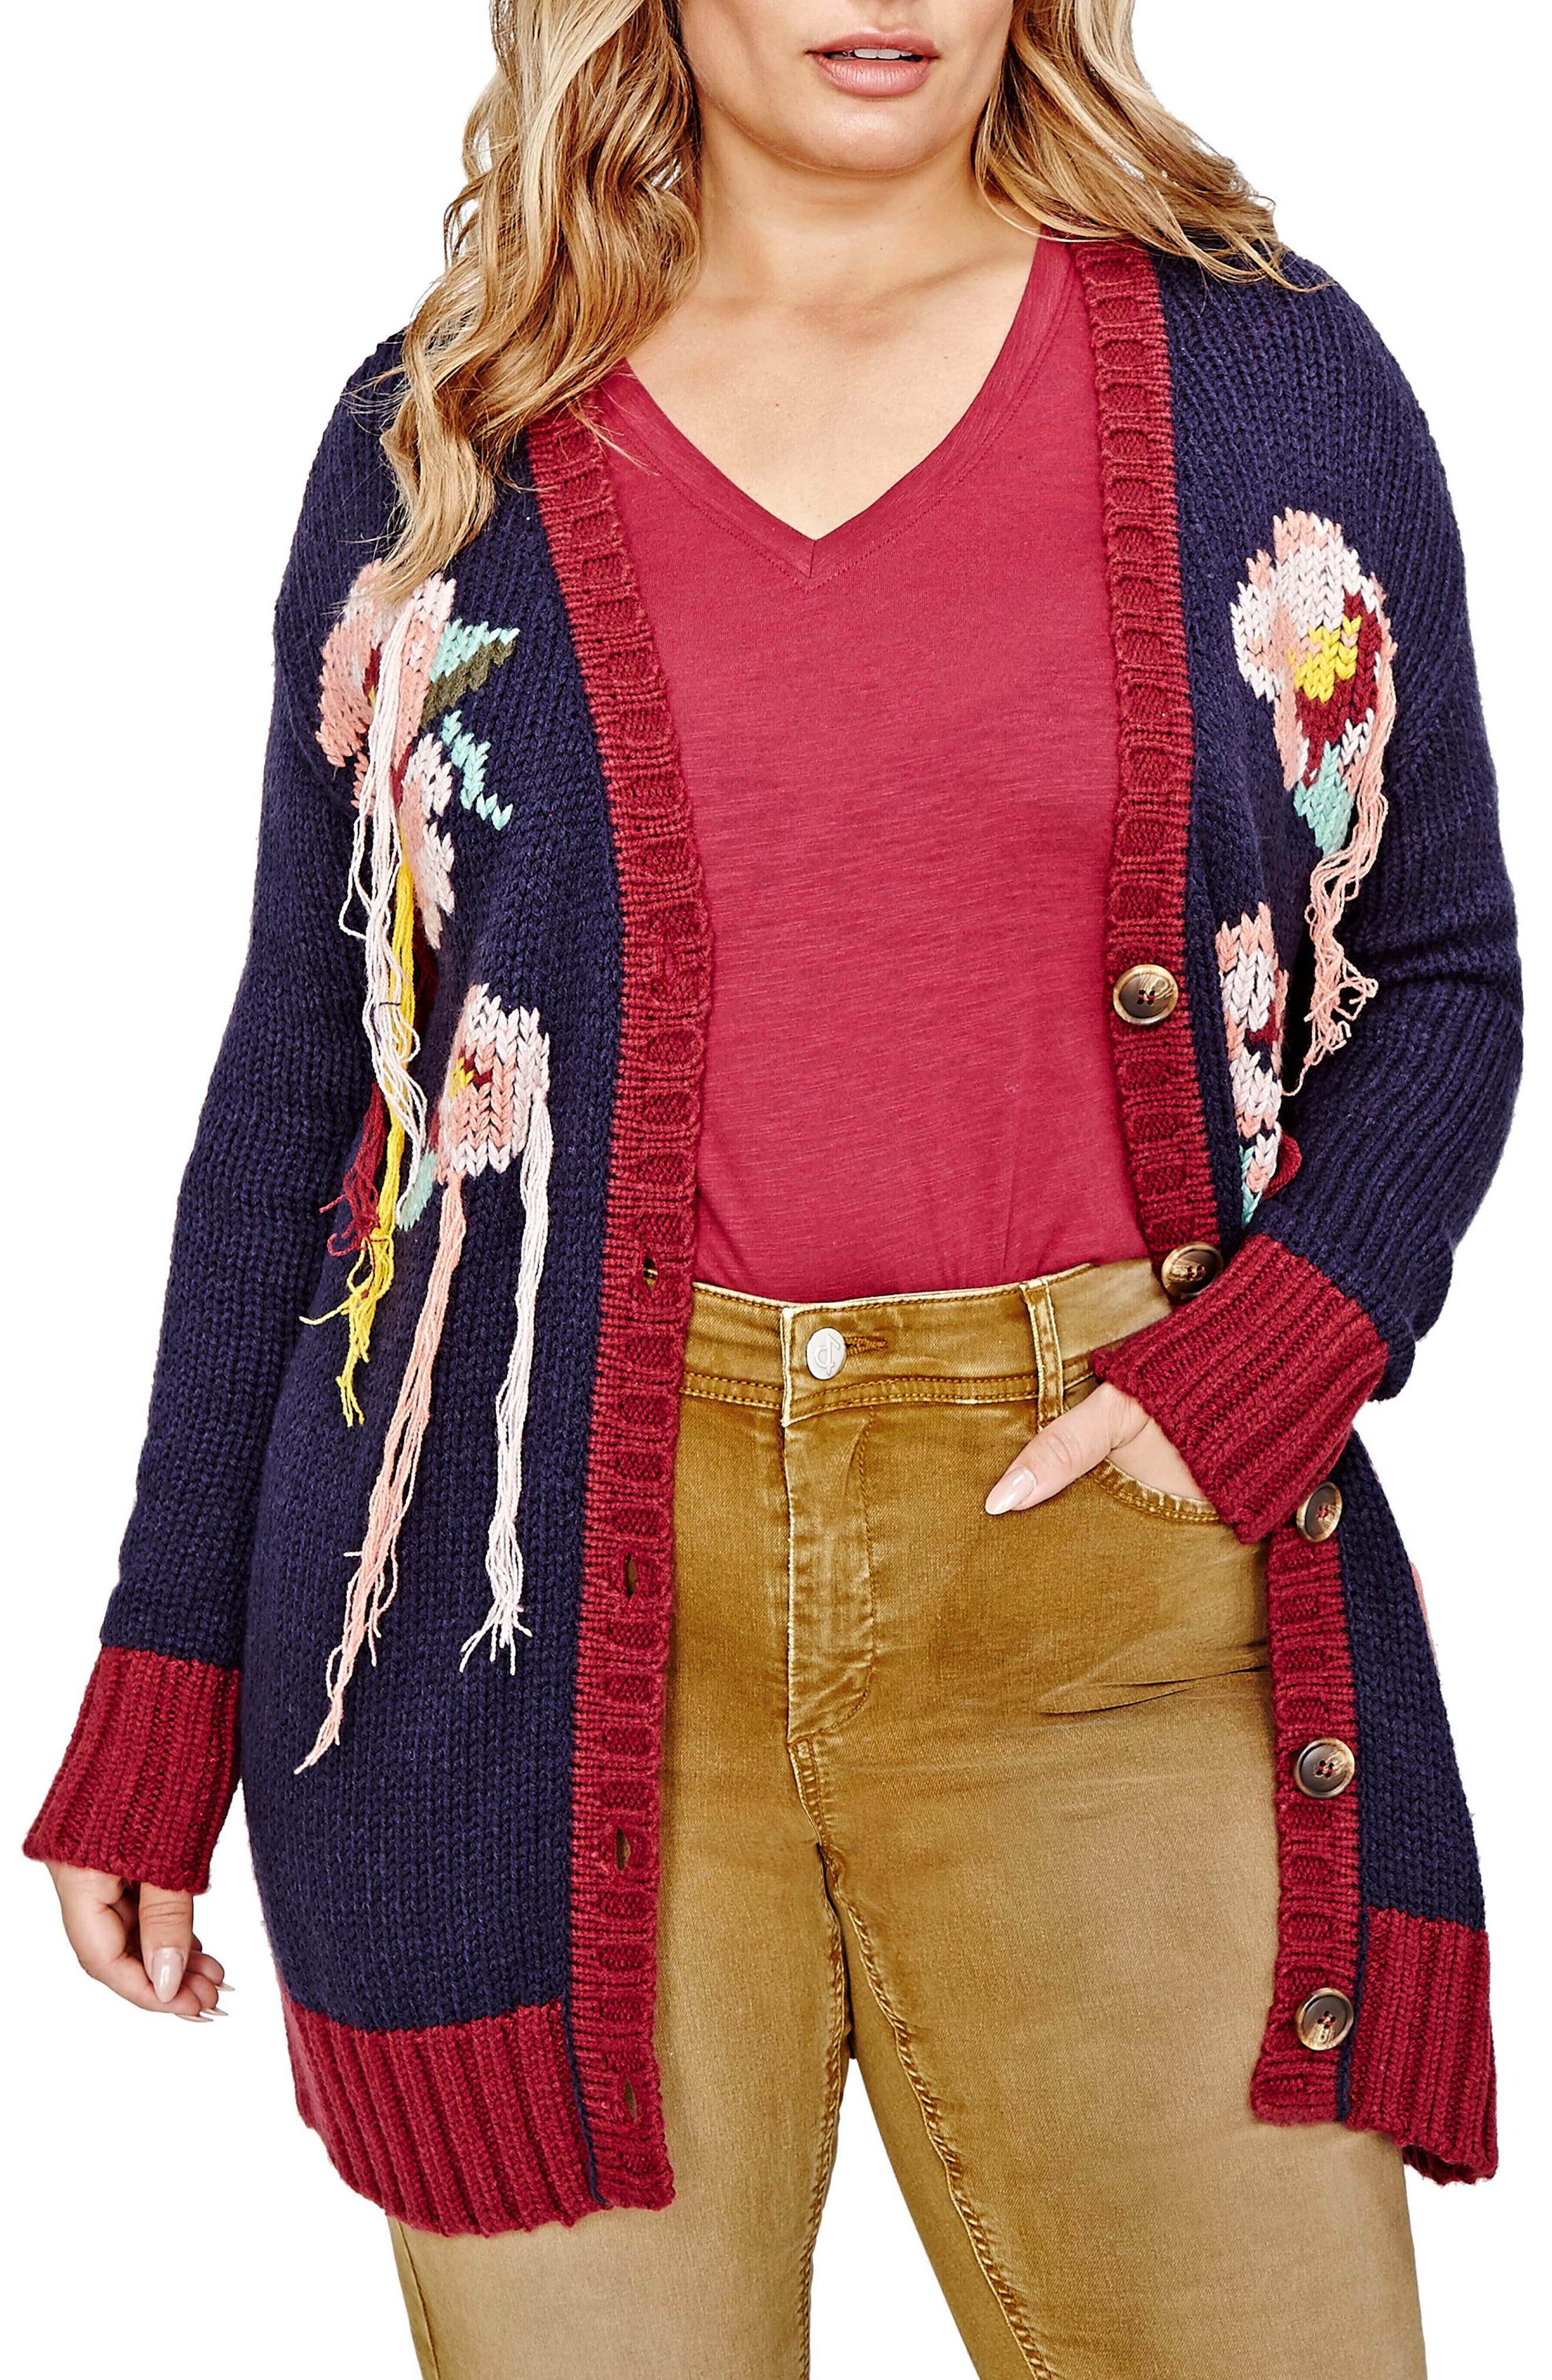 Main Image - ADDITION ELLE LOVE AND LEGEND Hand Embroidered Cardigan (Plus Size)